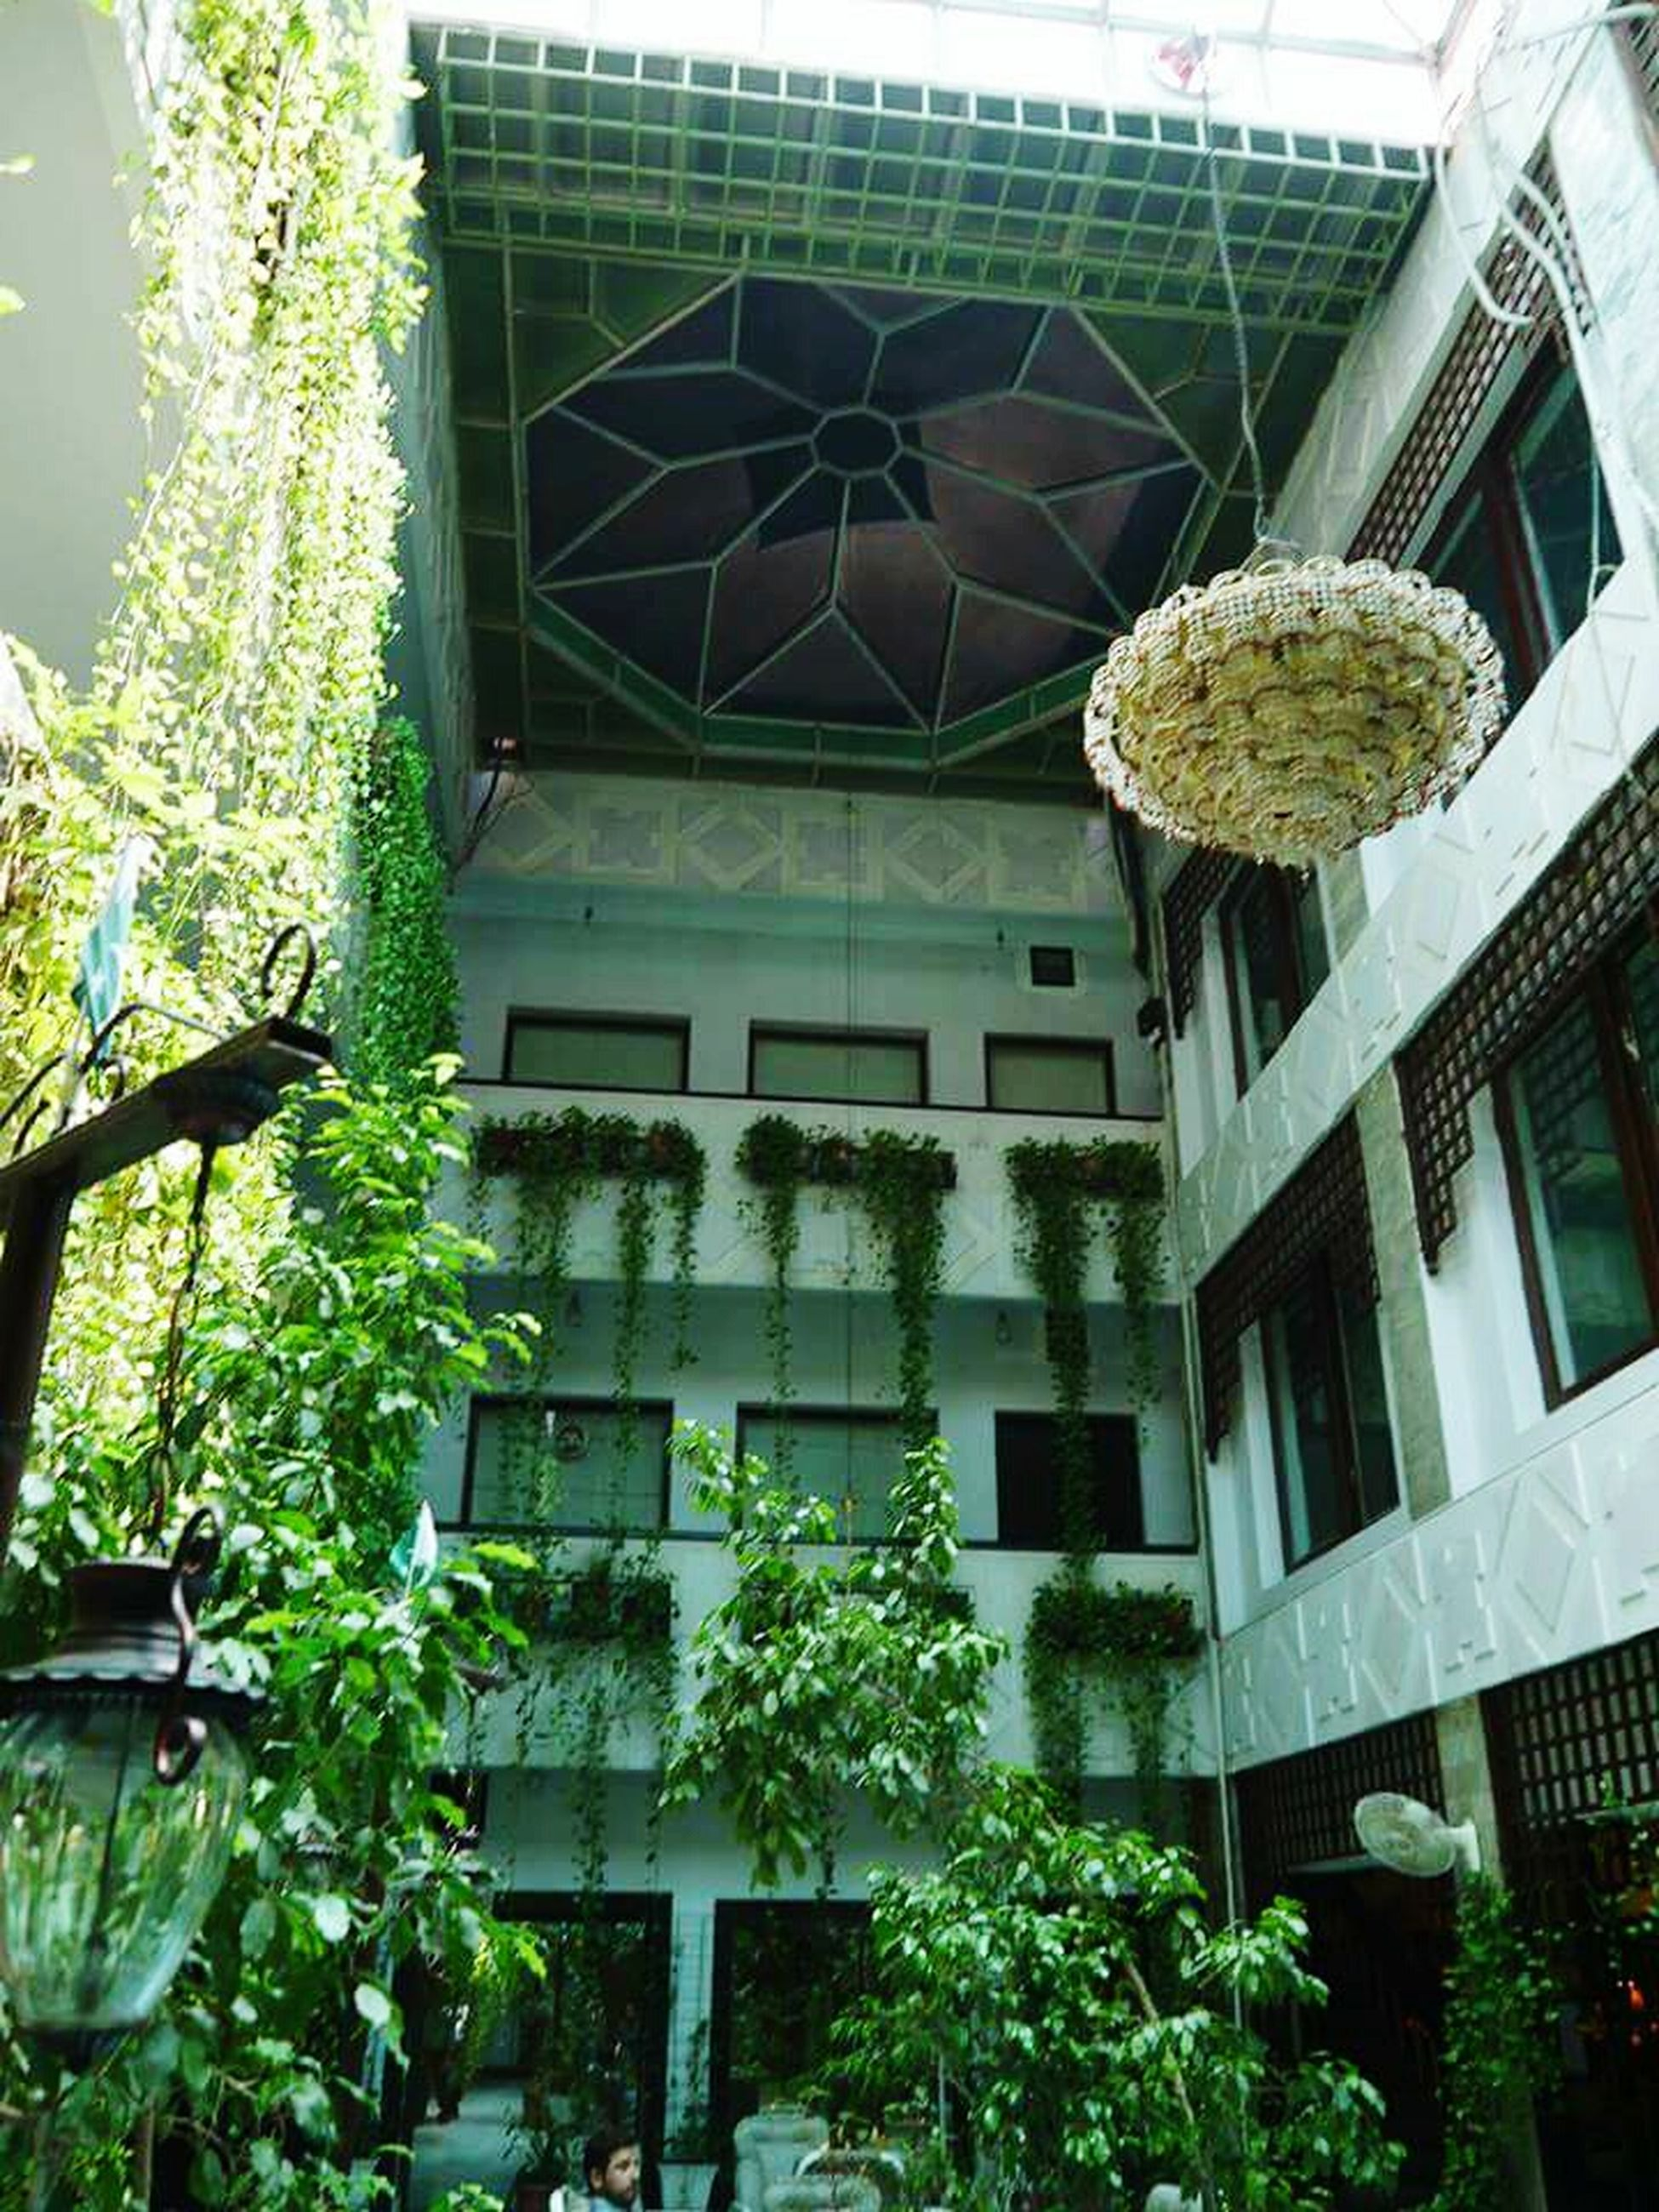 green color, plant, building exterior, architecture, tree, low angle view, built structure, outdoors, day, no people, nature, greenhouse